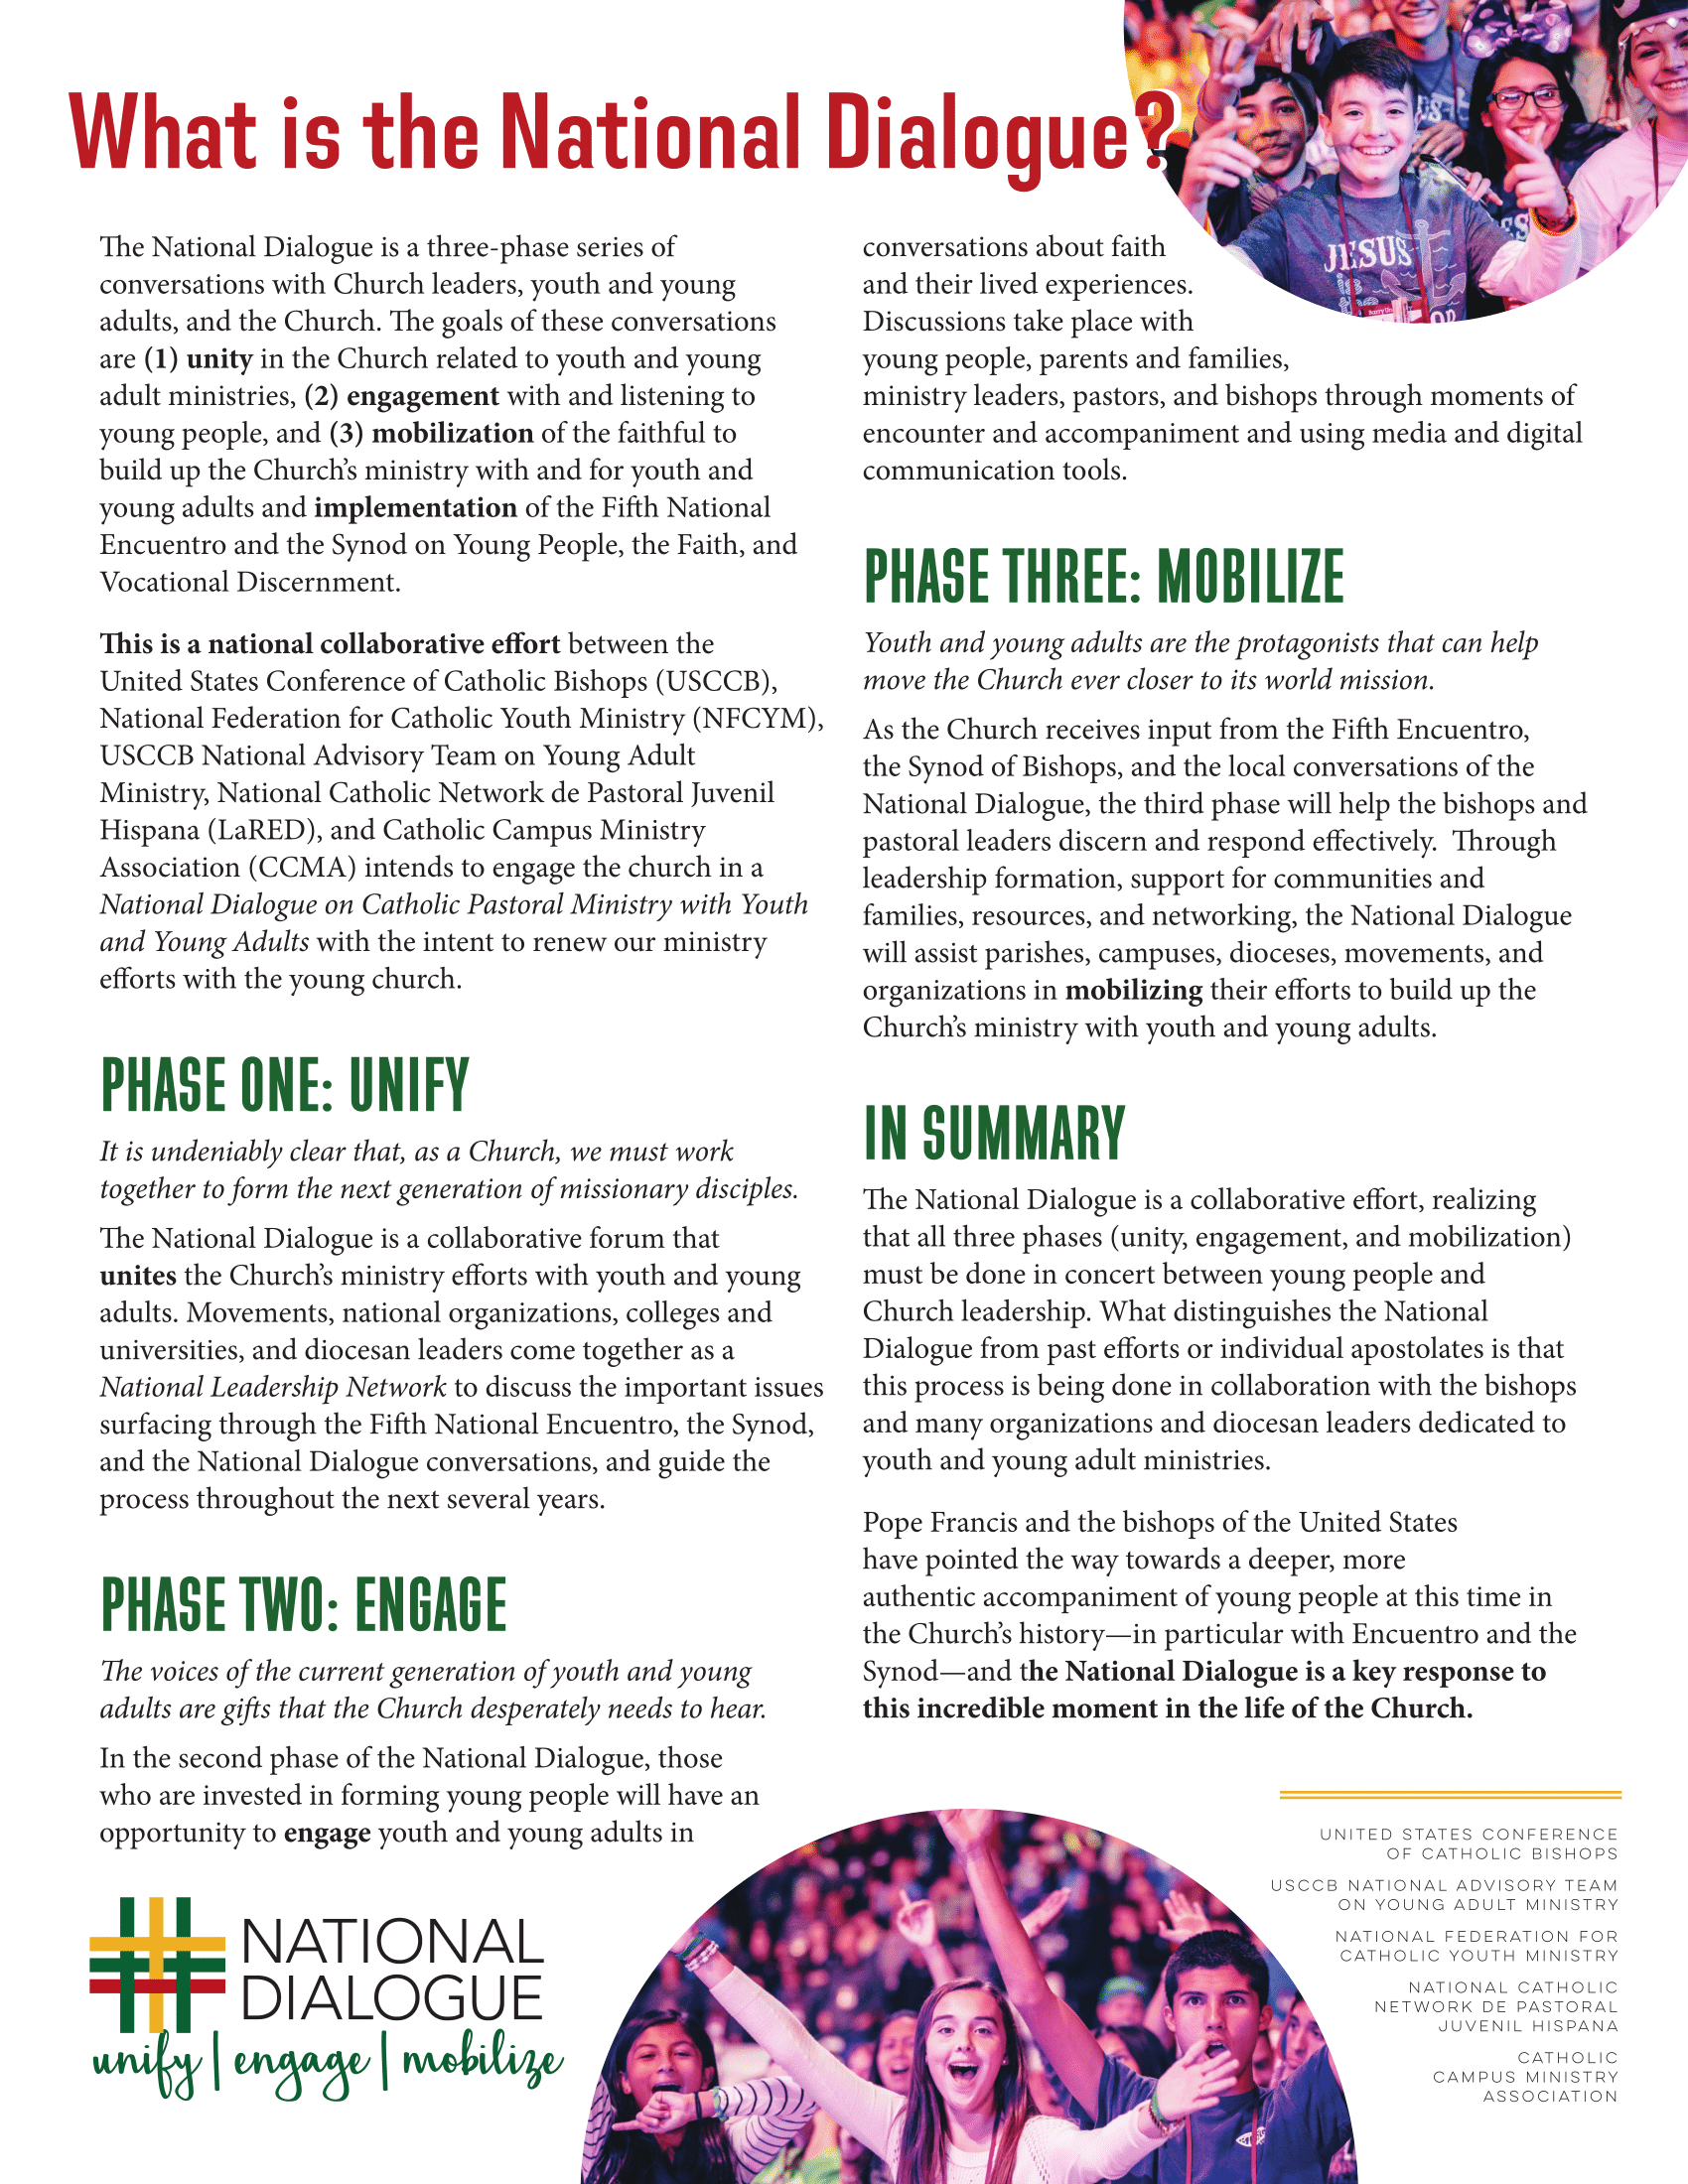 ND Marketing One-Pager-1.png